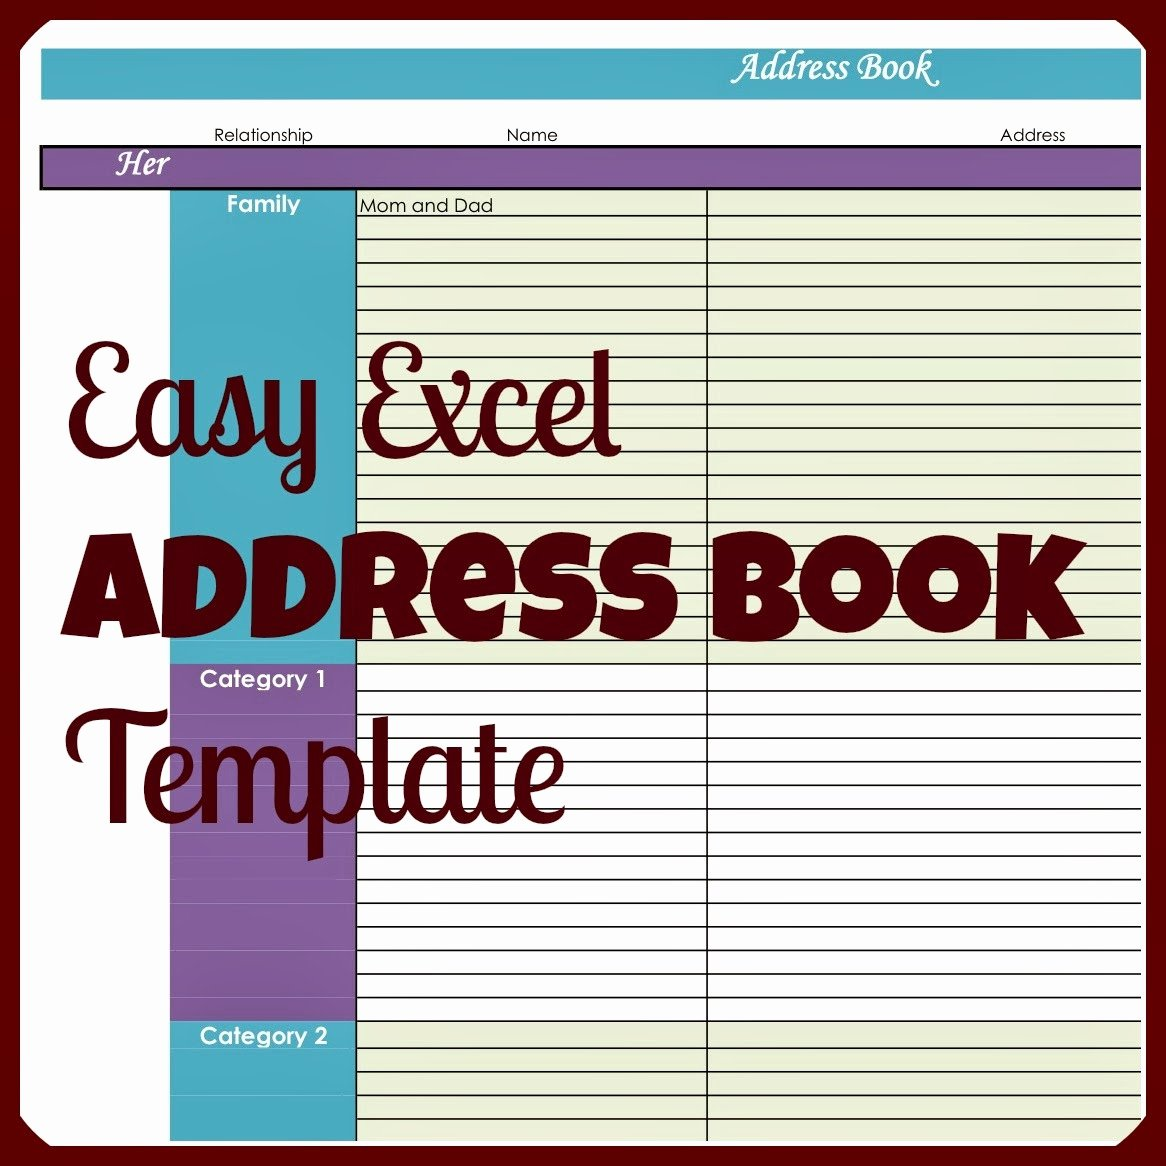 Printable Phone Book Template Elegant Laura S Plans Easy Excel Address Book Template